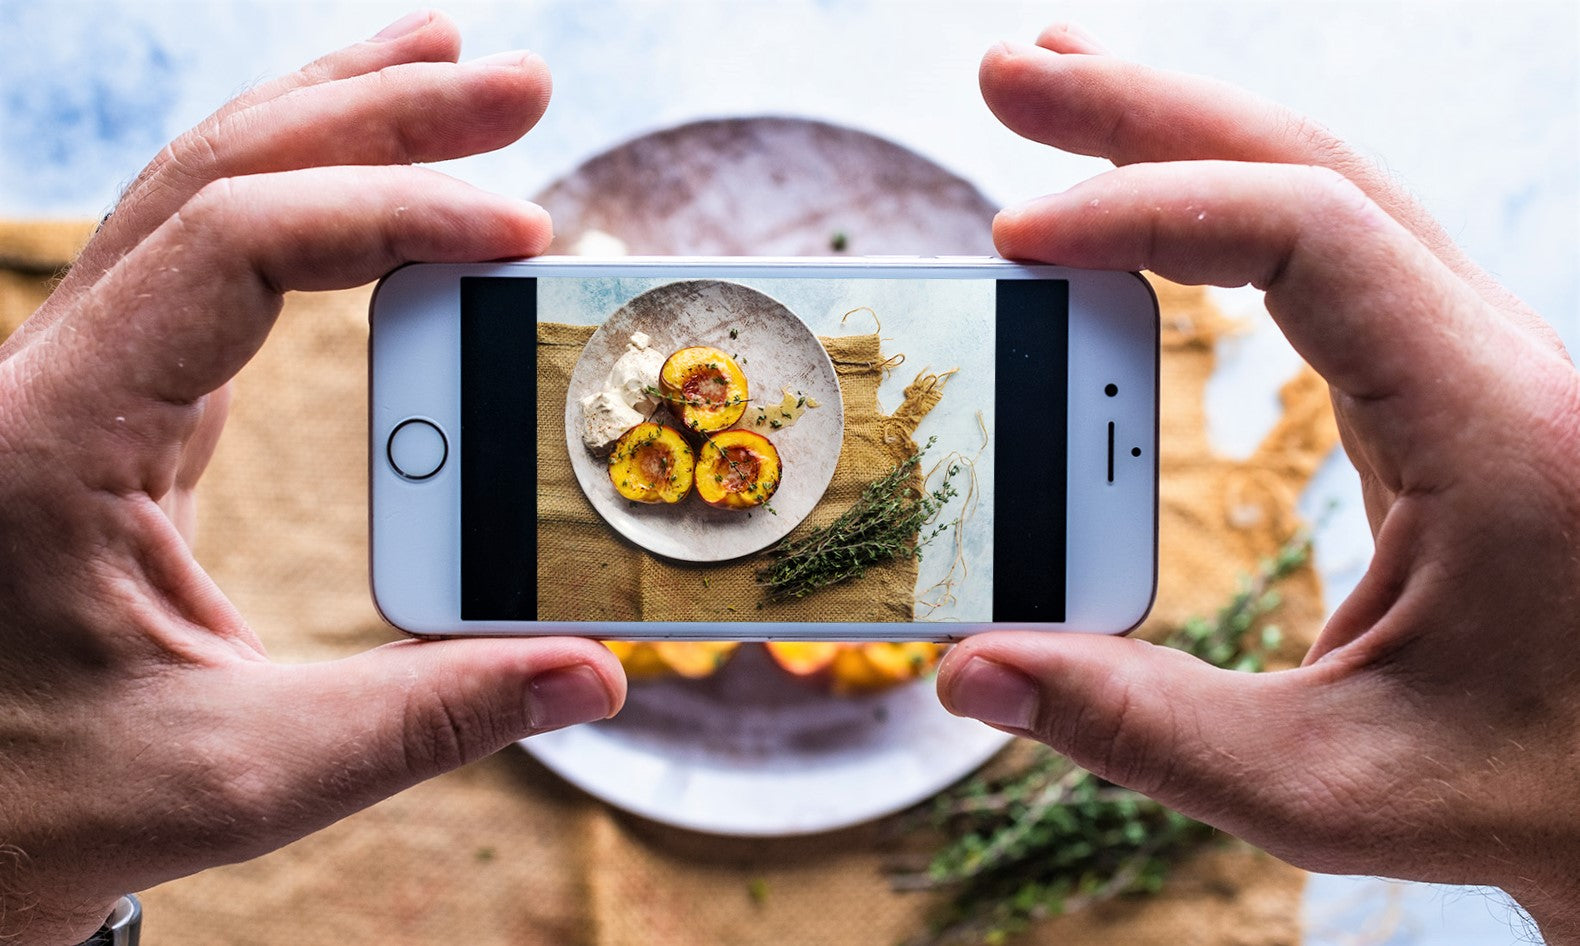 man uses iphone to photograph dish to promote favorite restaurant